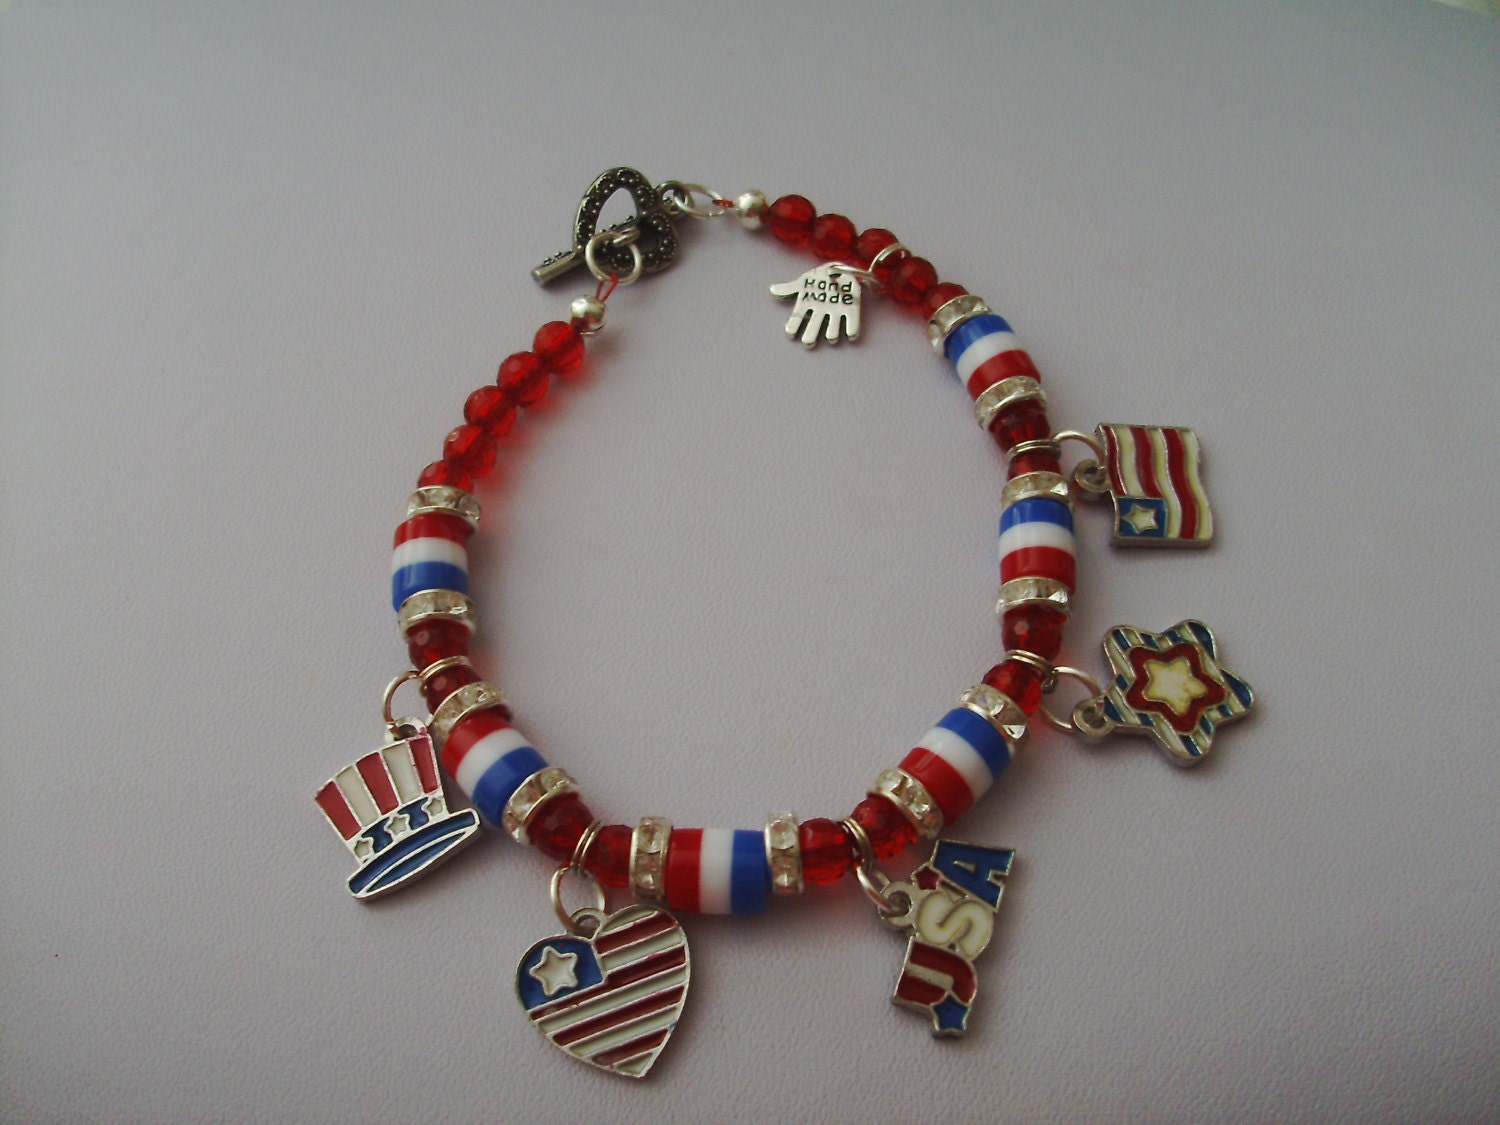 Ladies plus size charm bracelet red white blue bracelet for Plus size jewelry bracelets